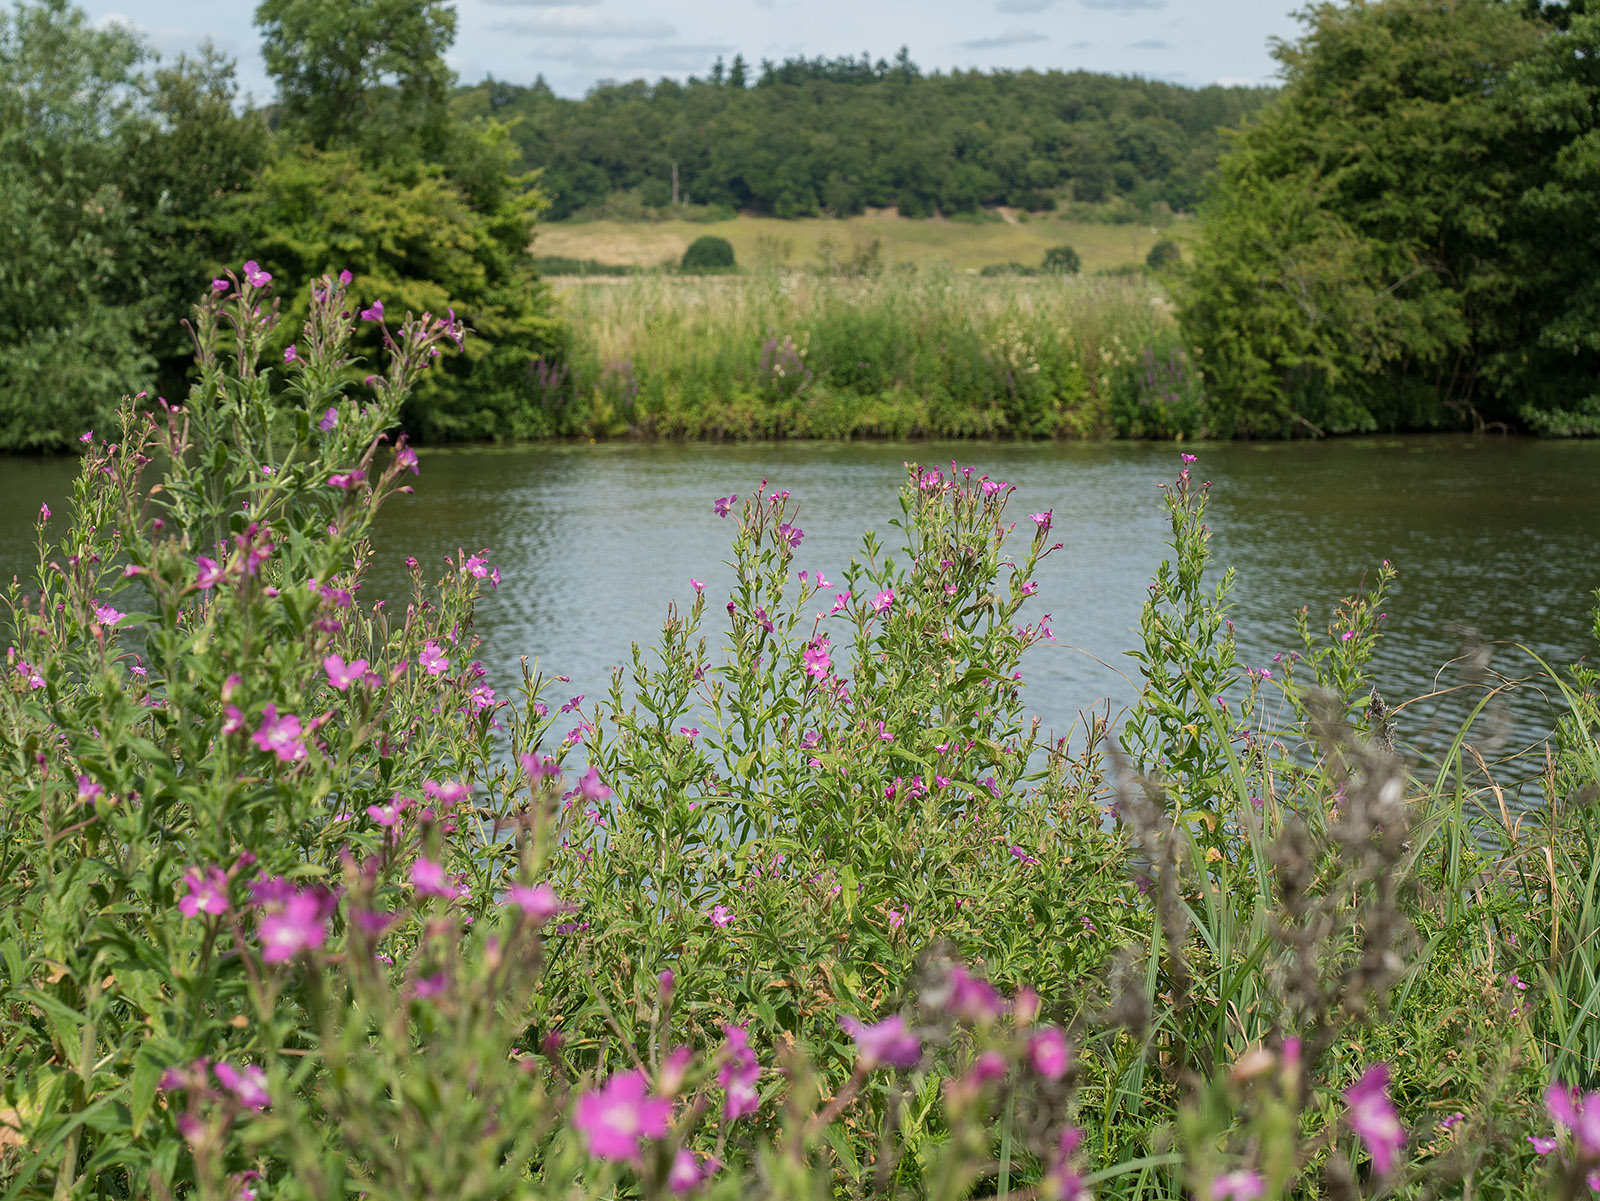 Flowers, river, meadows and hills